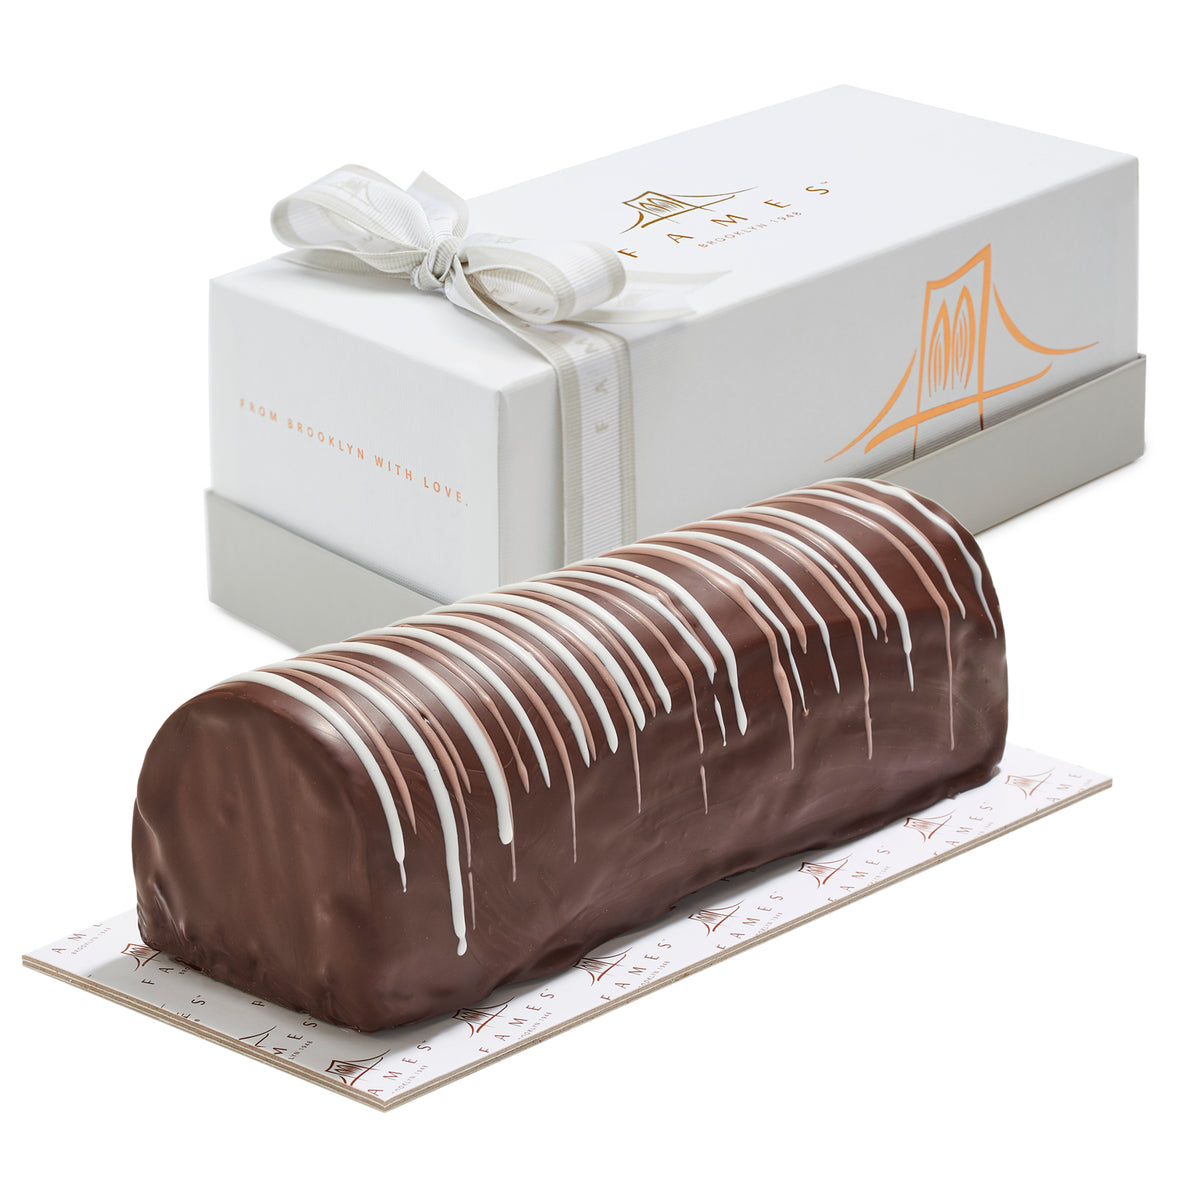 Gourmet truffle Log In Gift Box